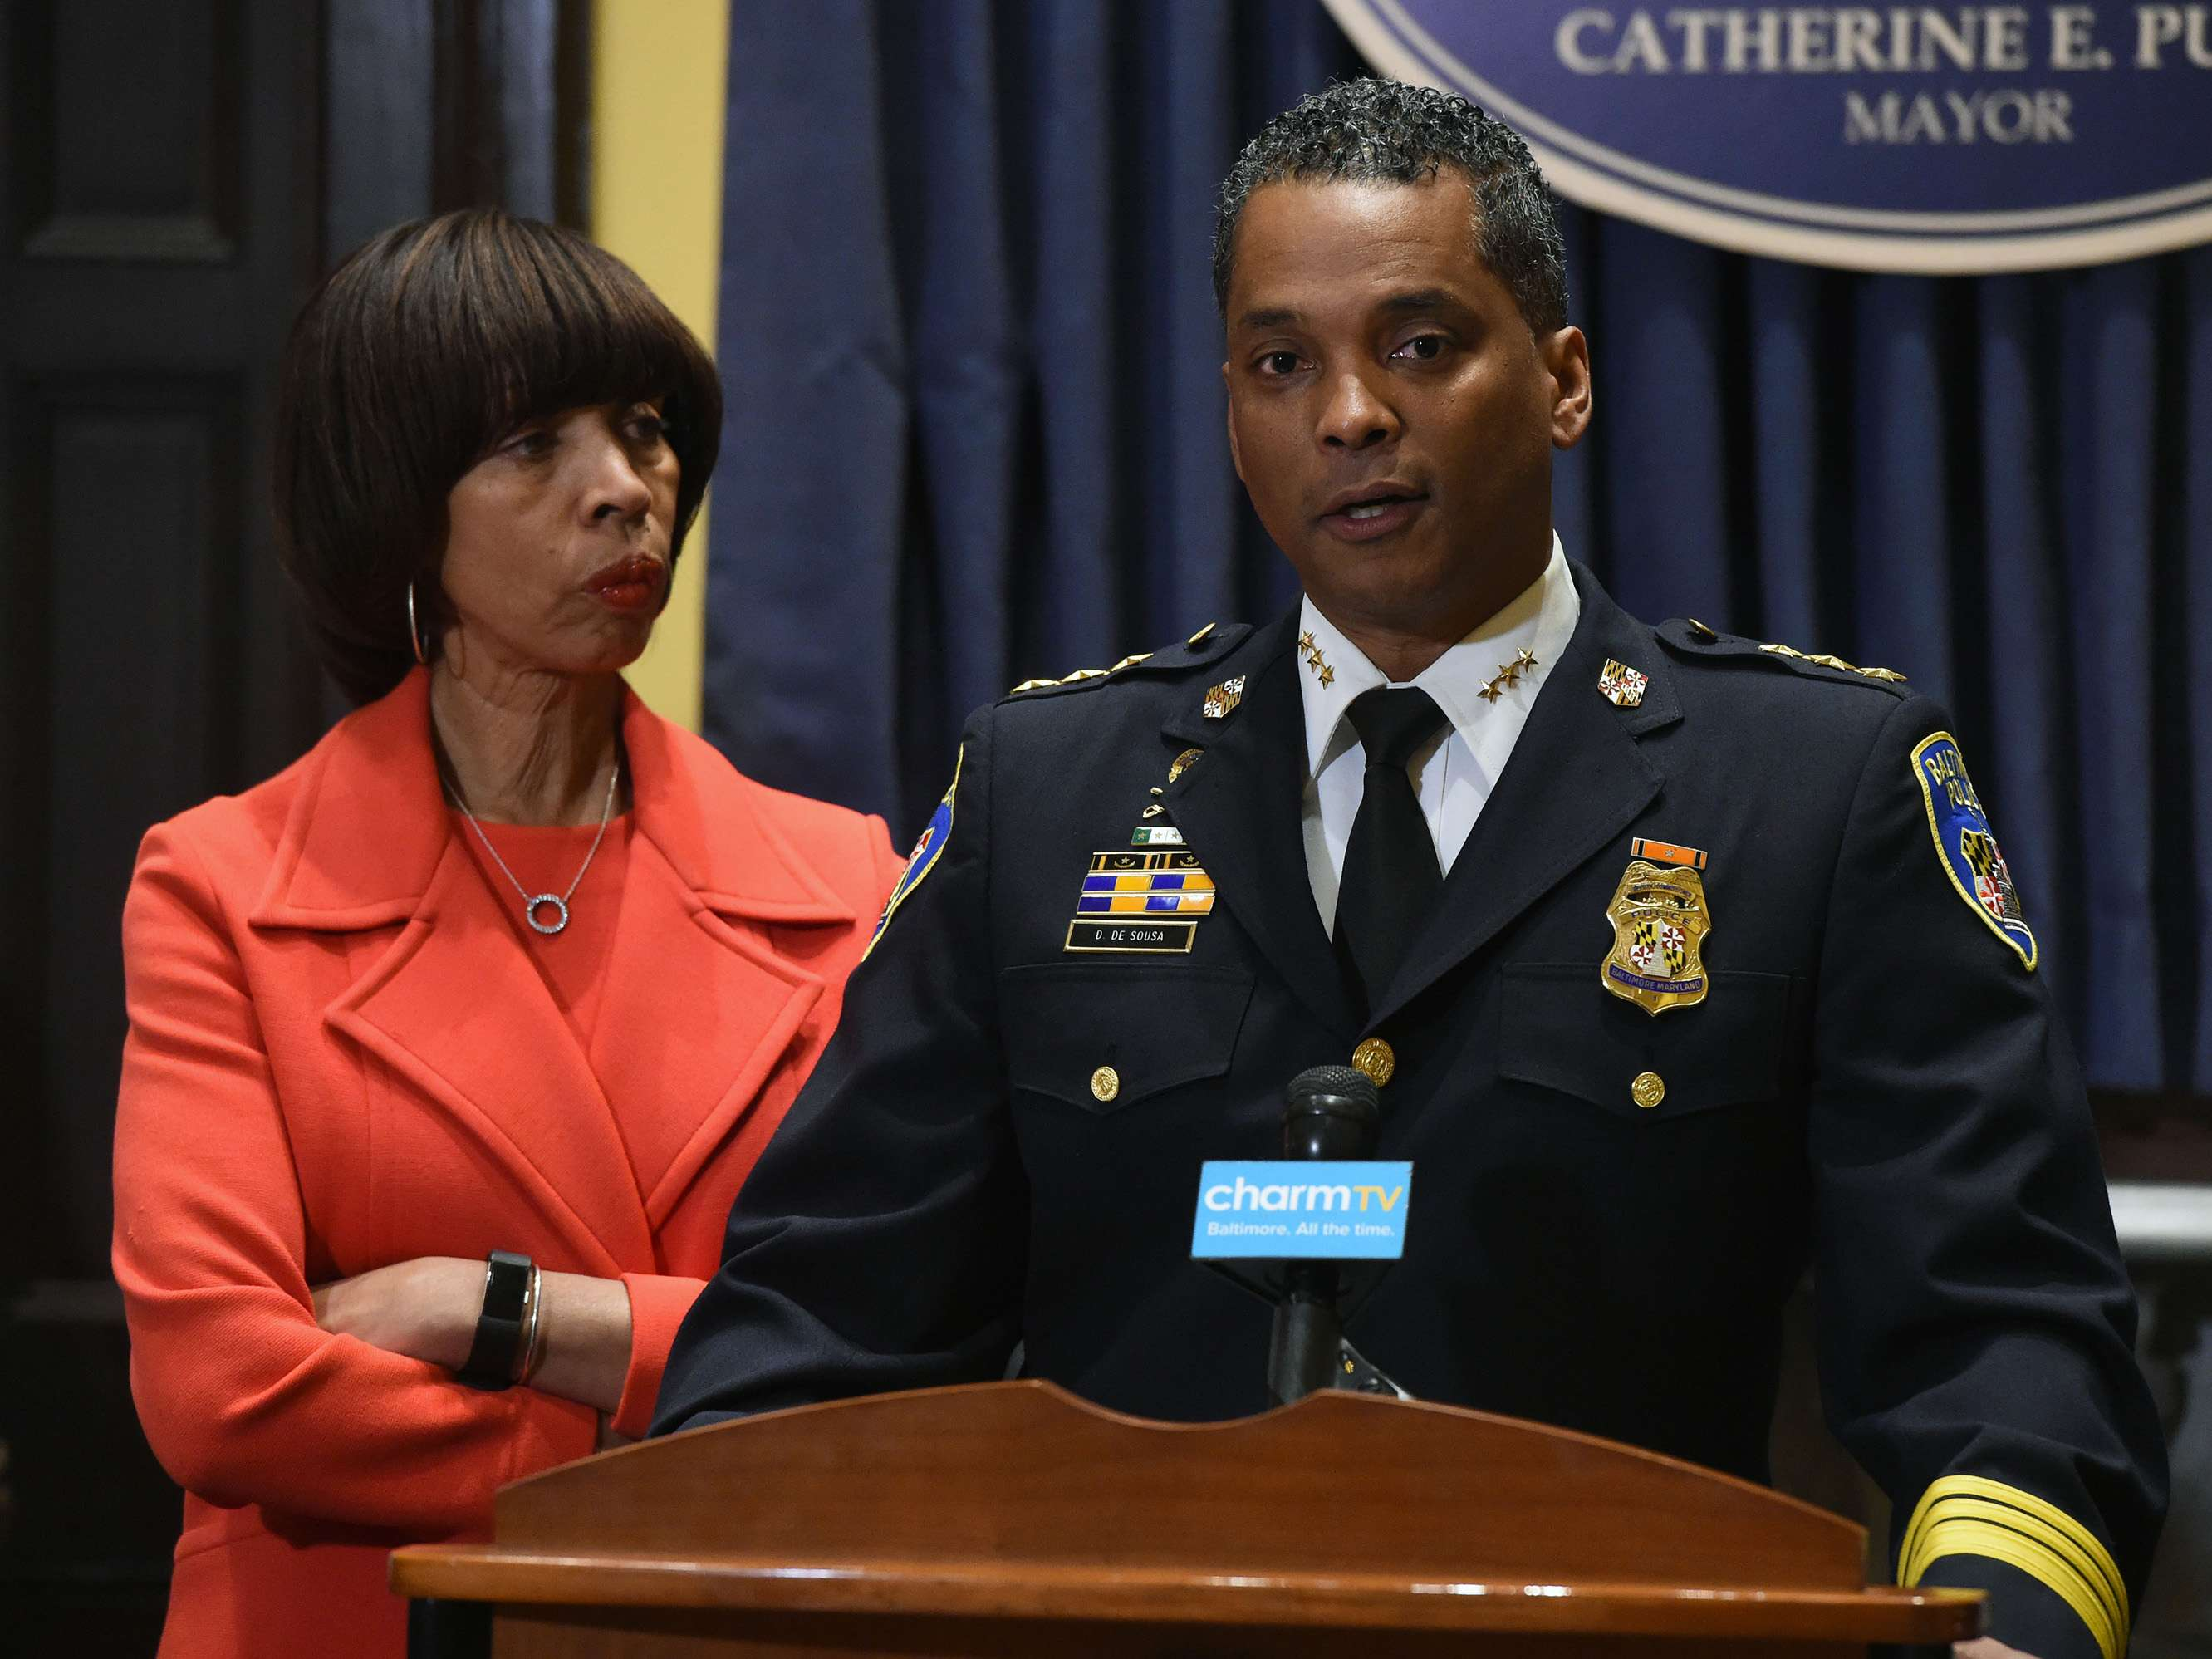 Baltimore Mayor Catherine Pugh with new Baltimore Police Department Commissioner Darryl DeSousa